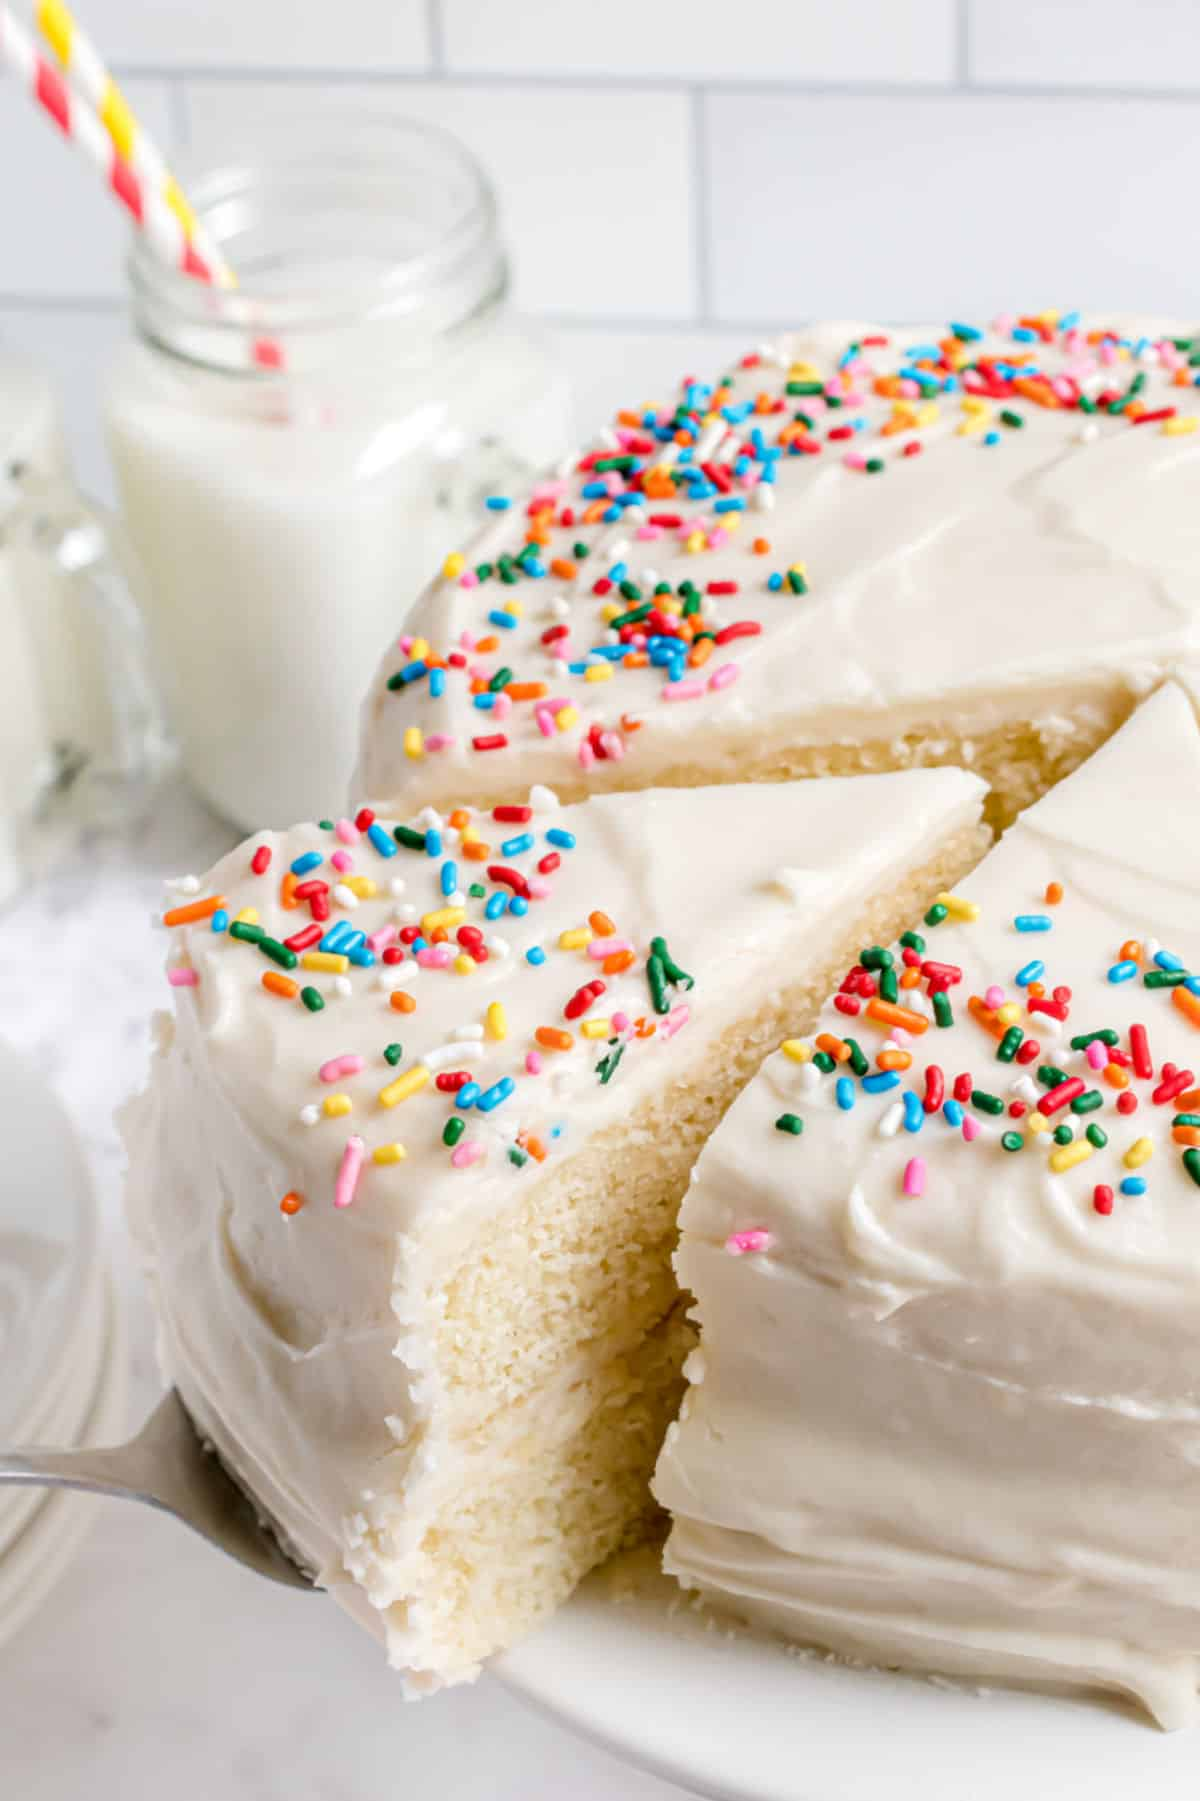 Vanilla layer cake with vanilla frosting and sprinkles.